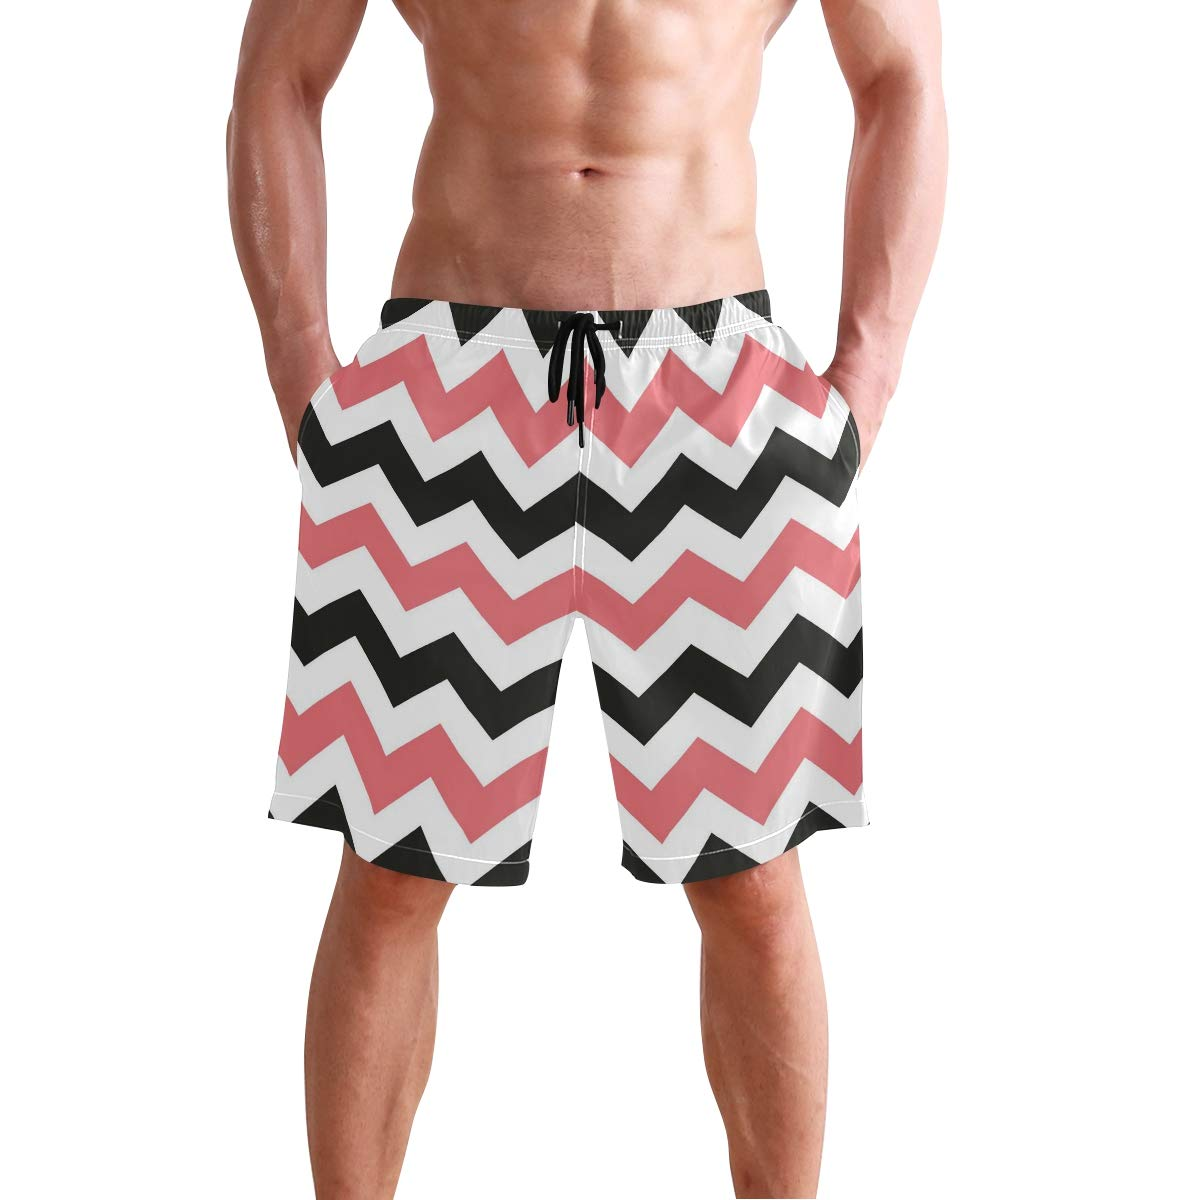 DEYYA Mens Awesome Chevron Swim Trunks Beachwear Summer Holiday Beach Shorts Quick Dry